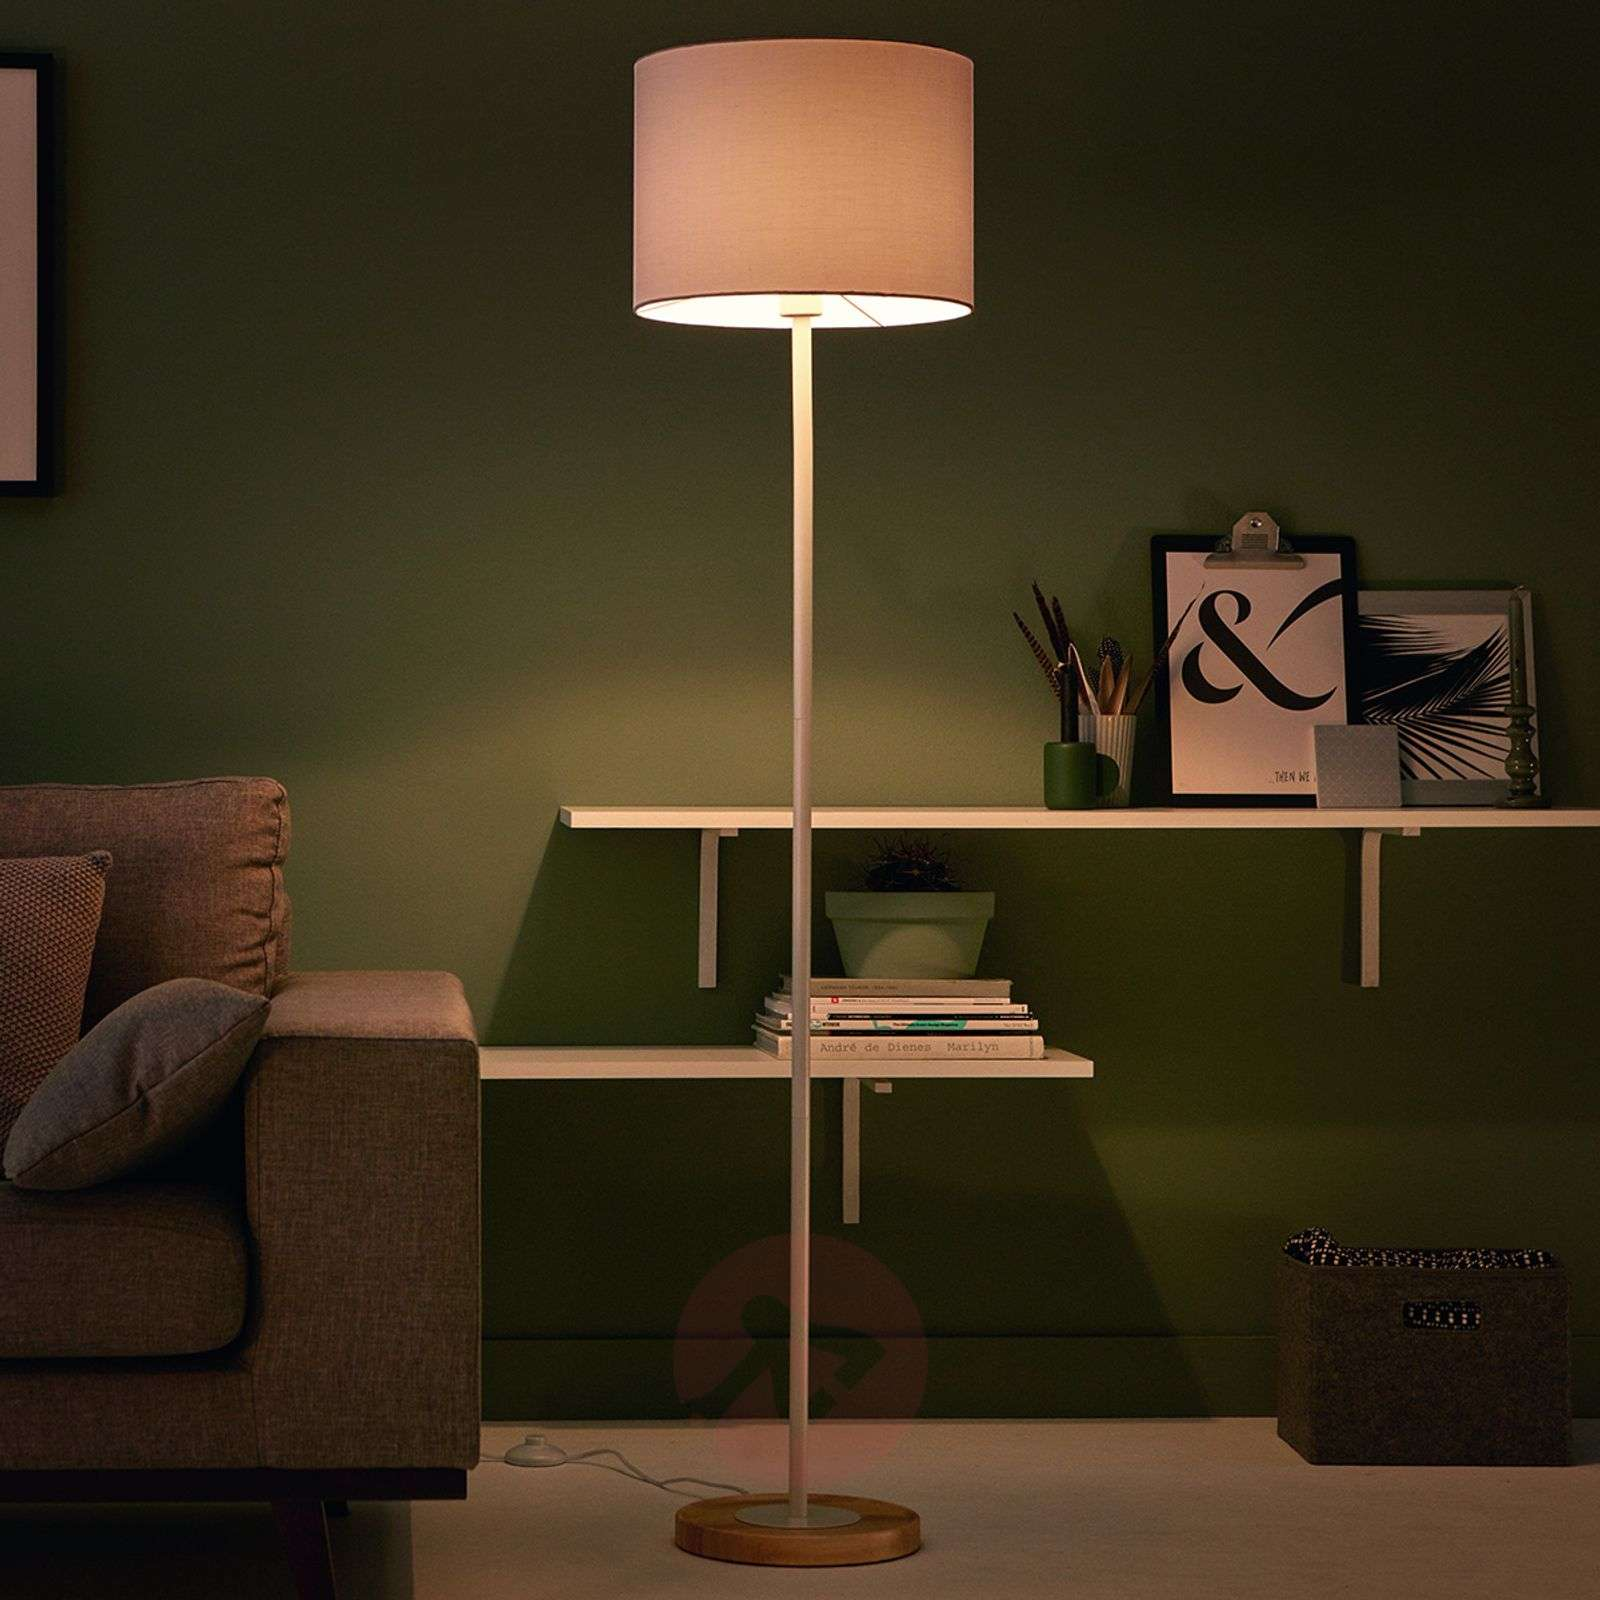 Fabric limba floor lamp with wooden base lights fabric floor lamp limba with a wooden base 7531689 01 aloadofball Images